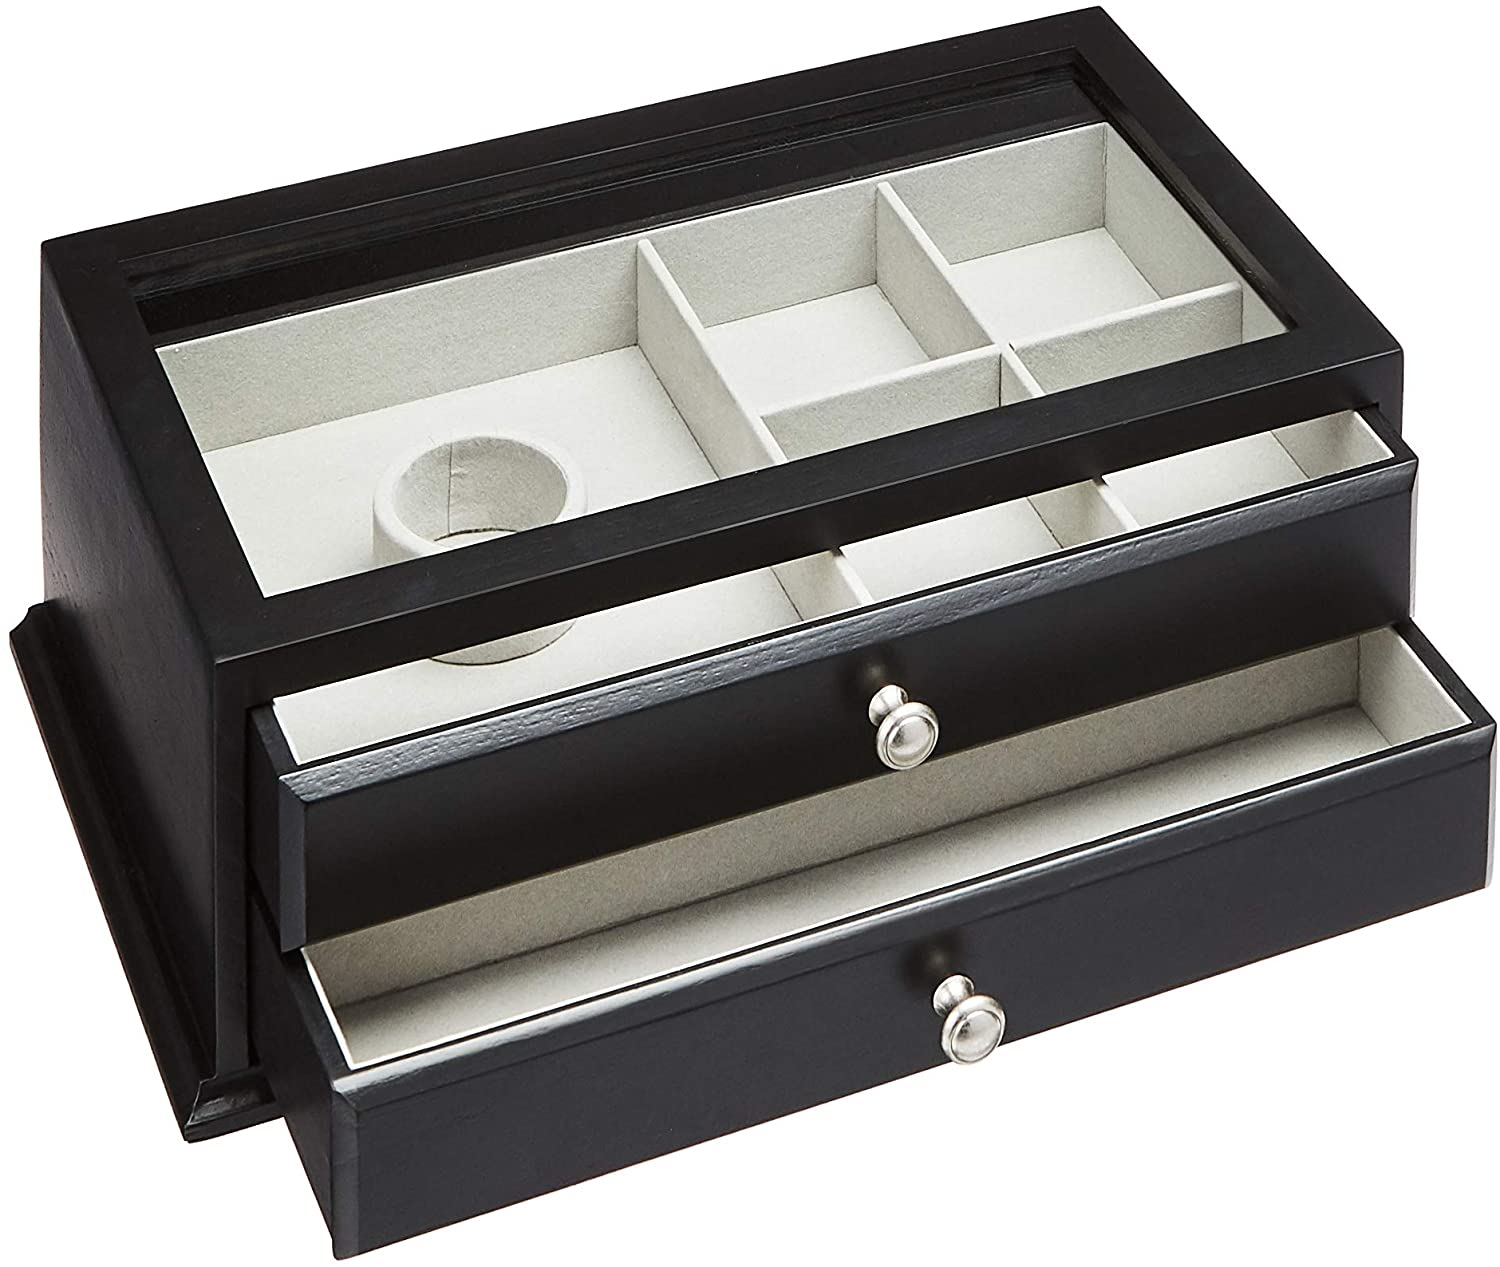 AmazonBasics Wooden Jewelry/Watch Box with Glass Top — 2-Drawer,Black